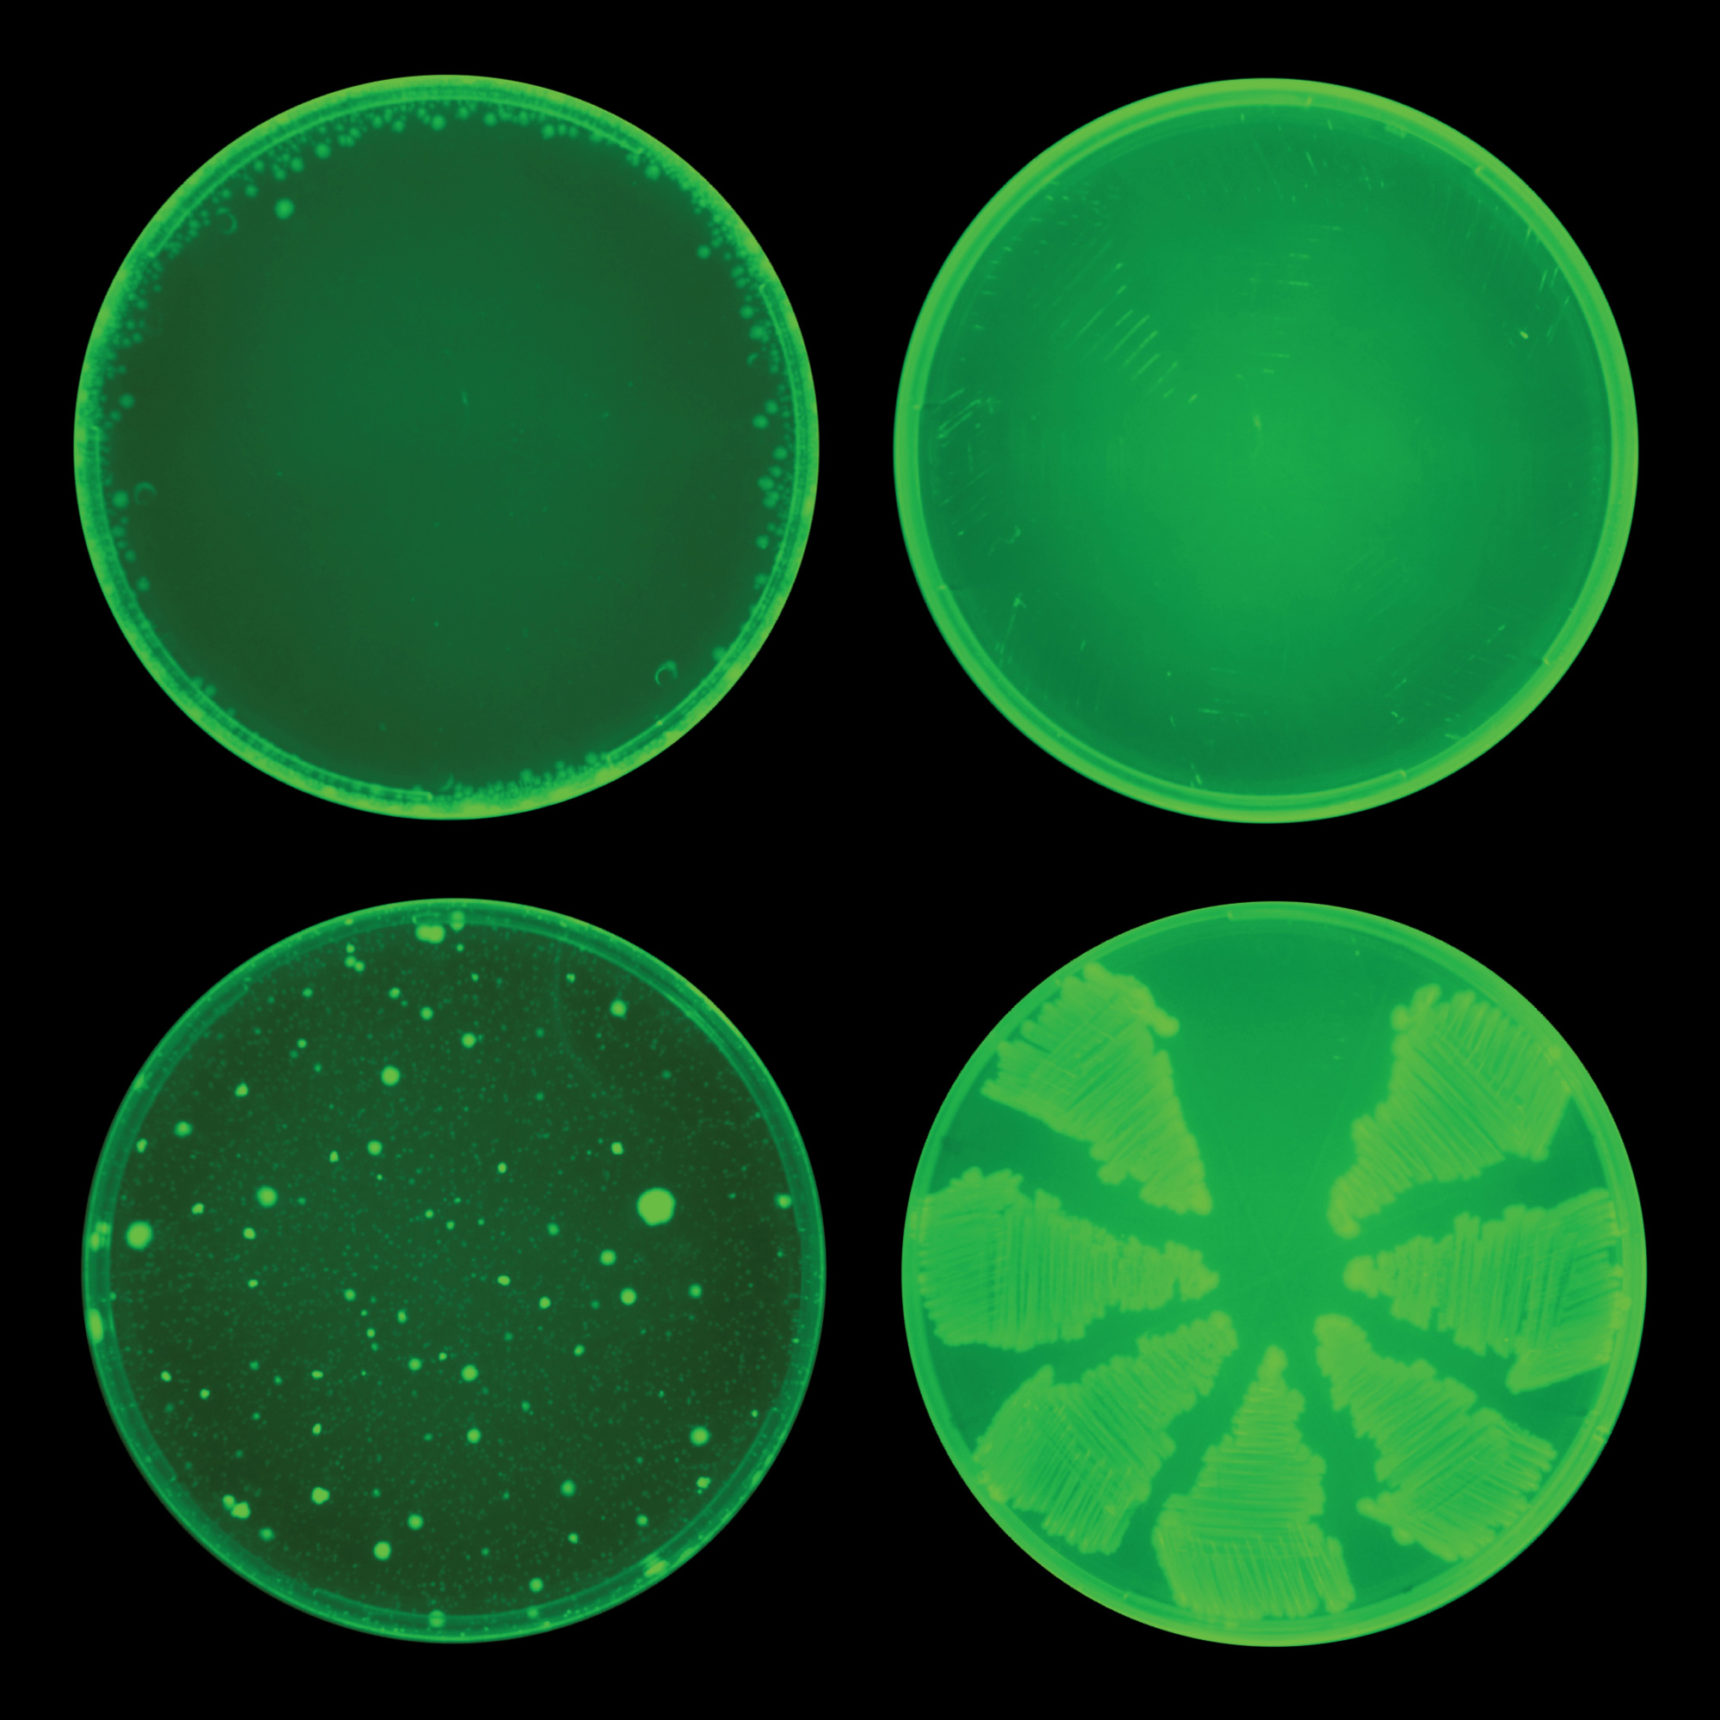 Four petri dishes arranged in a square. The top dishes show much less bacterial growth than the bottom ones.